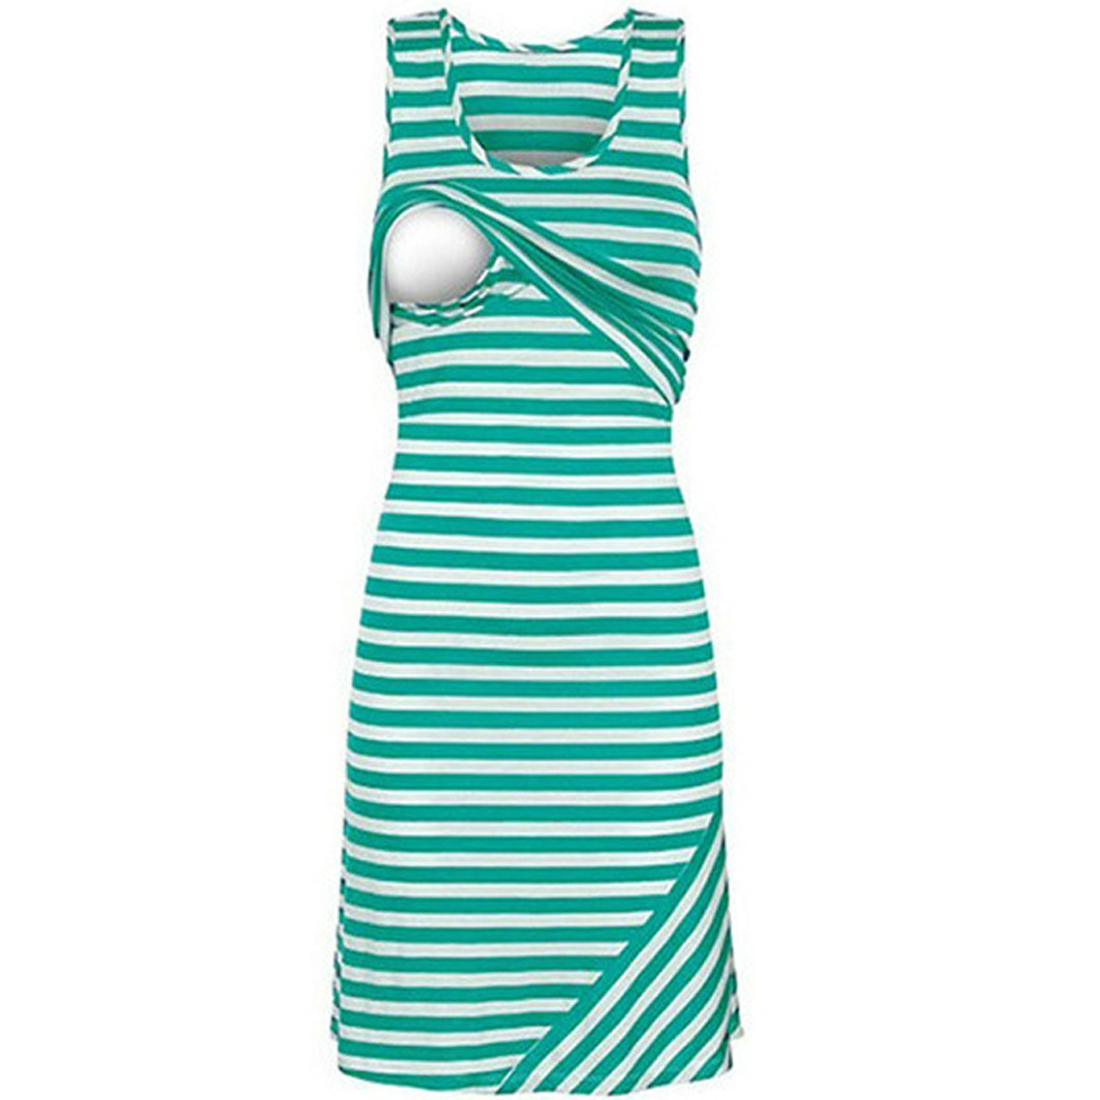 YJSFG HOUSE Women Nursing Dress Sexy Lady Convenience Baby-Sit Sleeveless Casual Long Slim Dress Baby Striped Tank Autumn Shirt